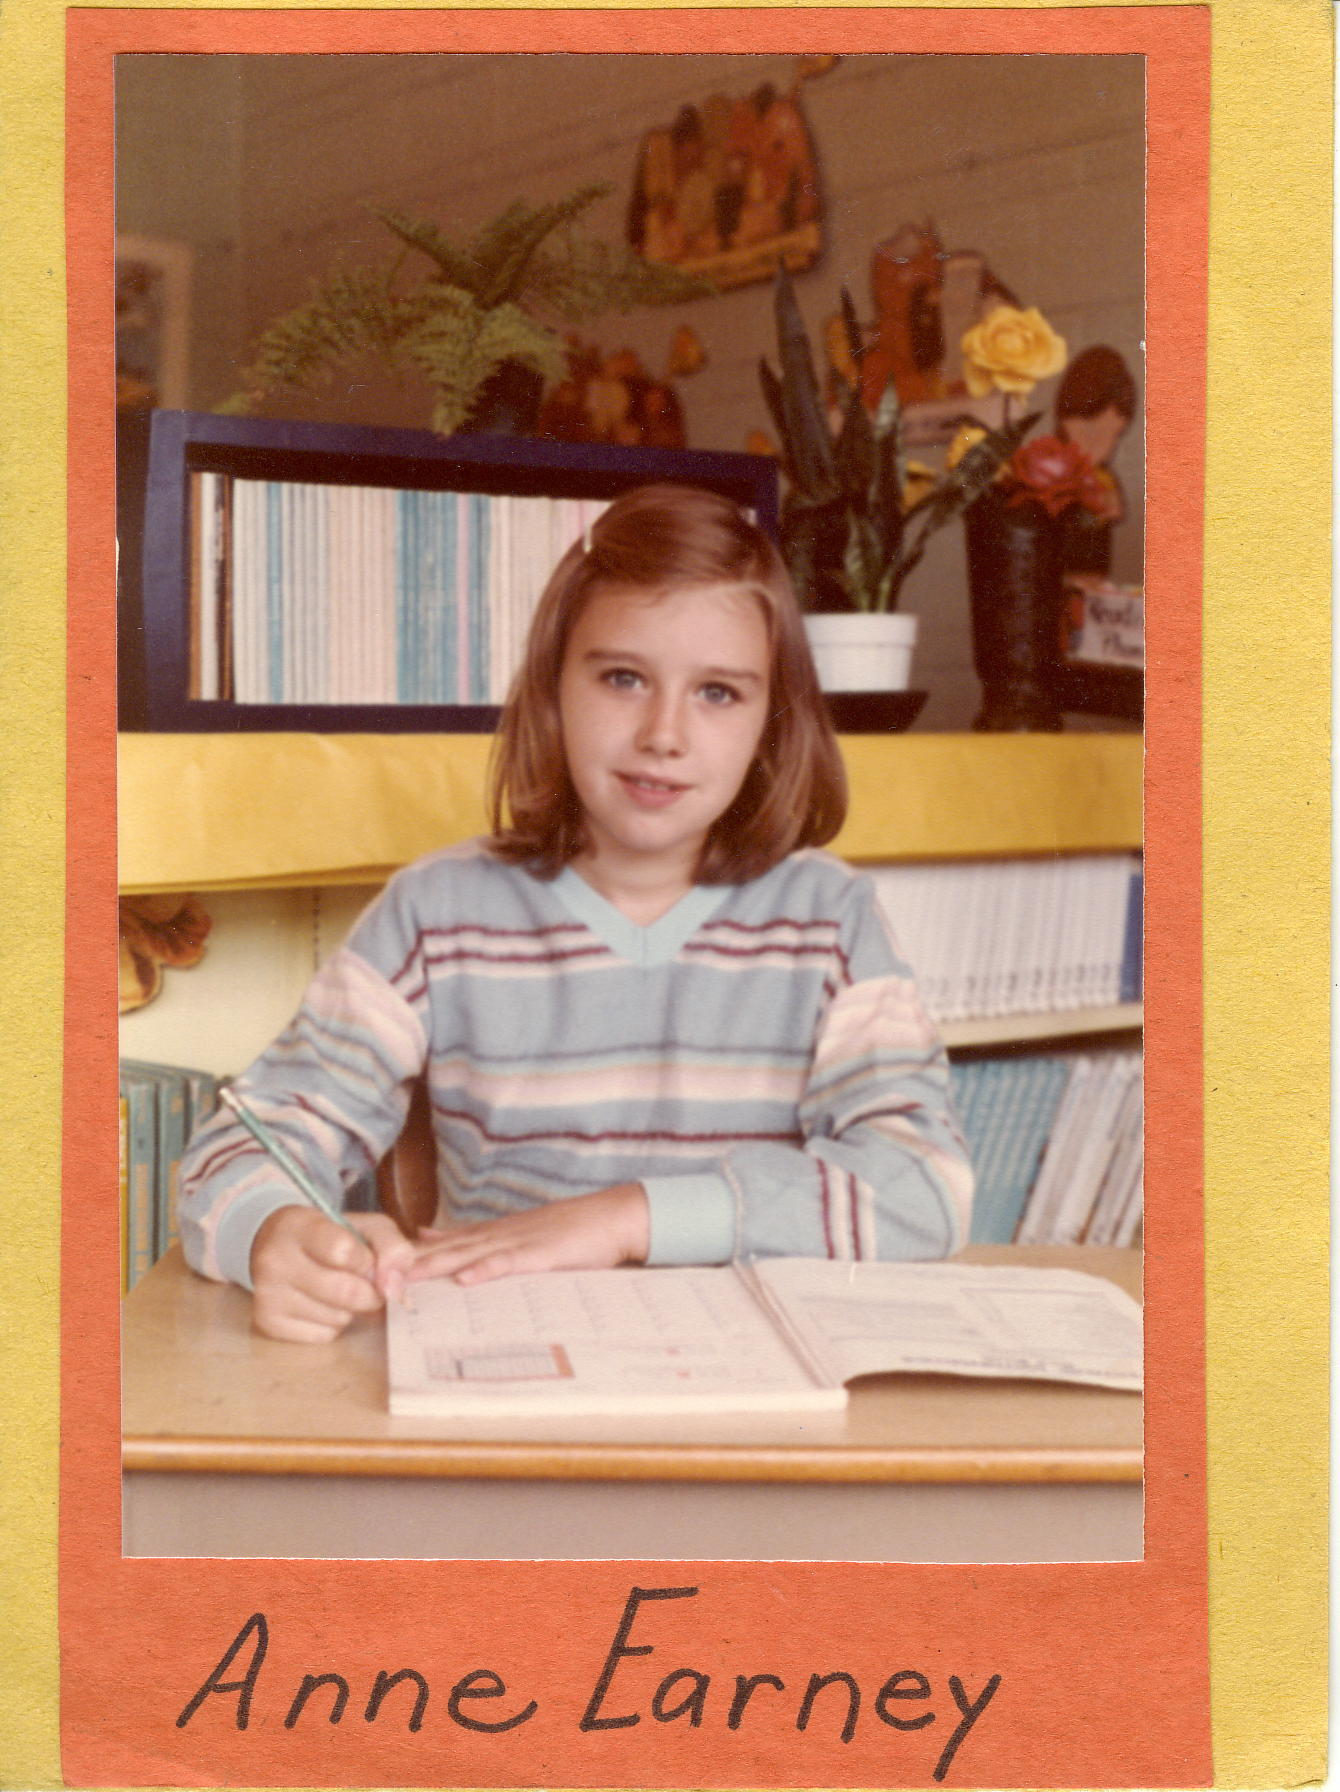 Here I am learning stuff in the 2nd grade.